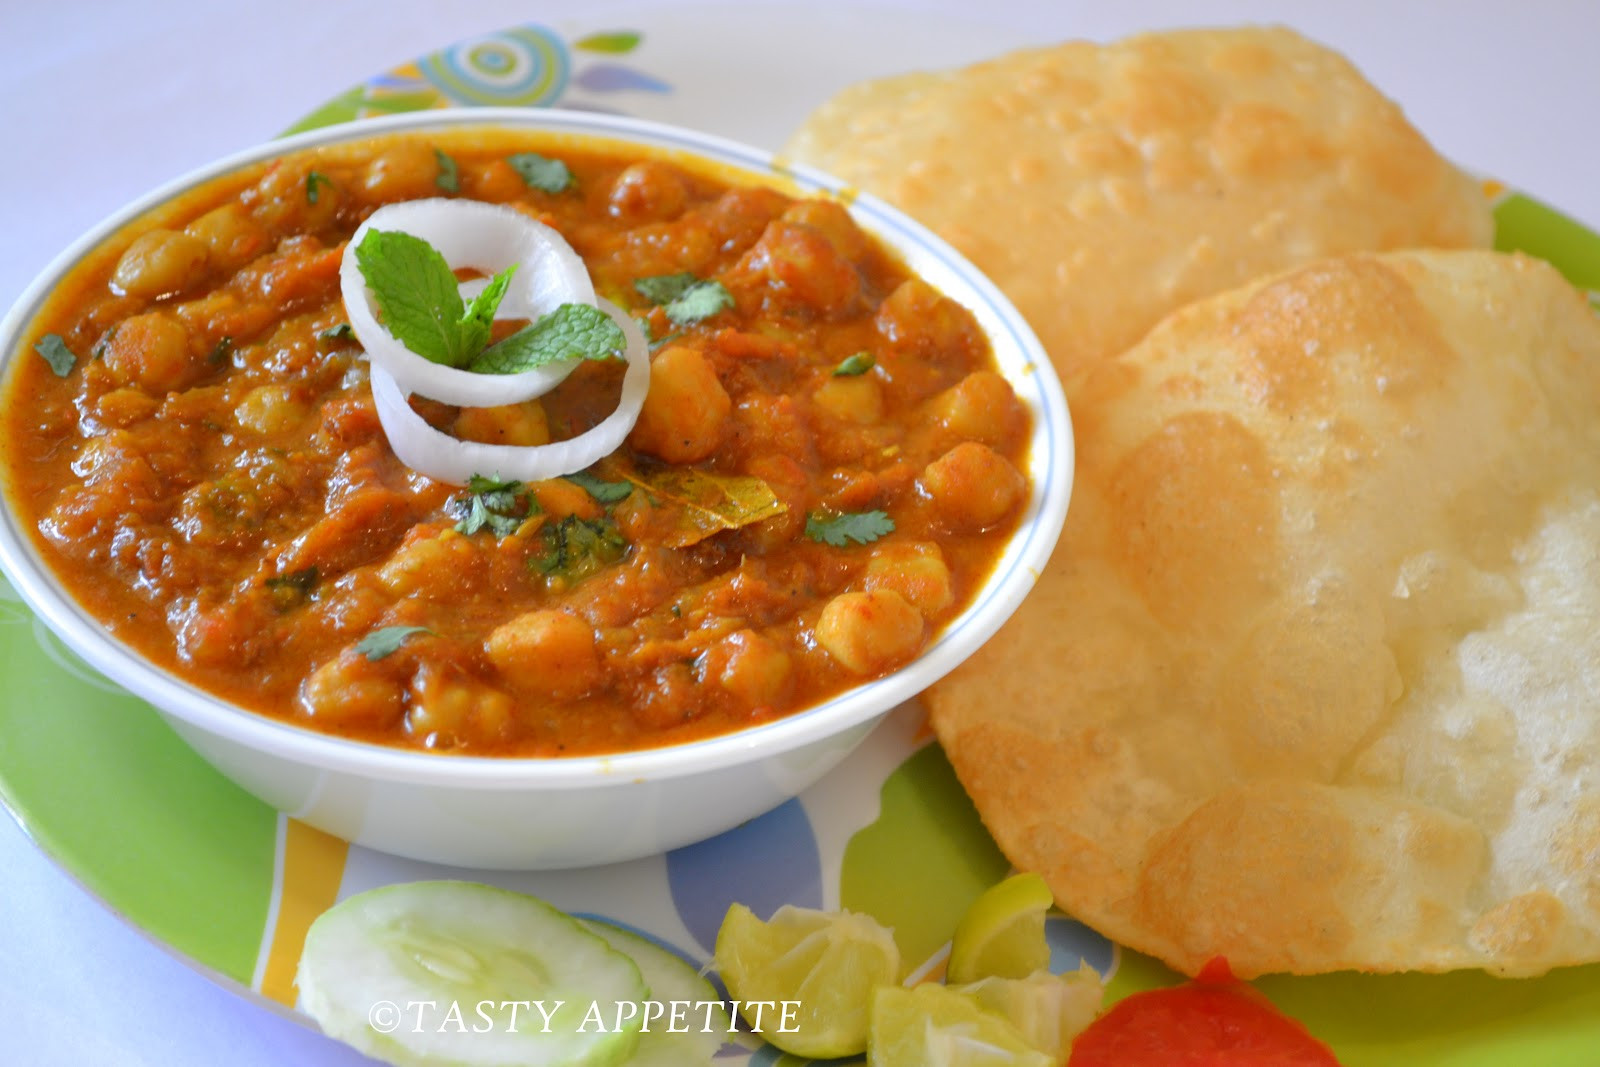 Authentic Indian Recipes  Chole Bhature Indian cooking Recipes Cuisines of India